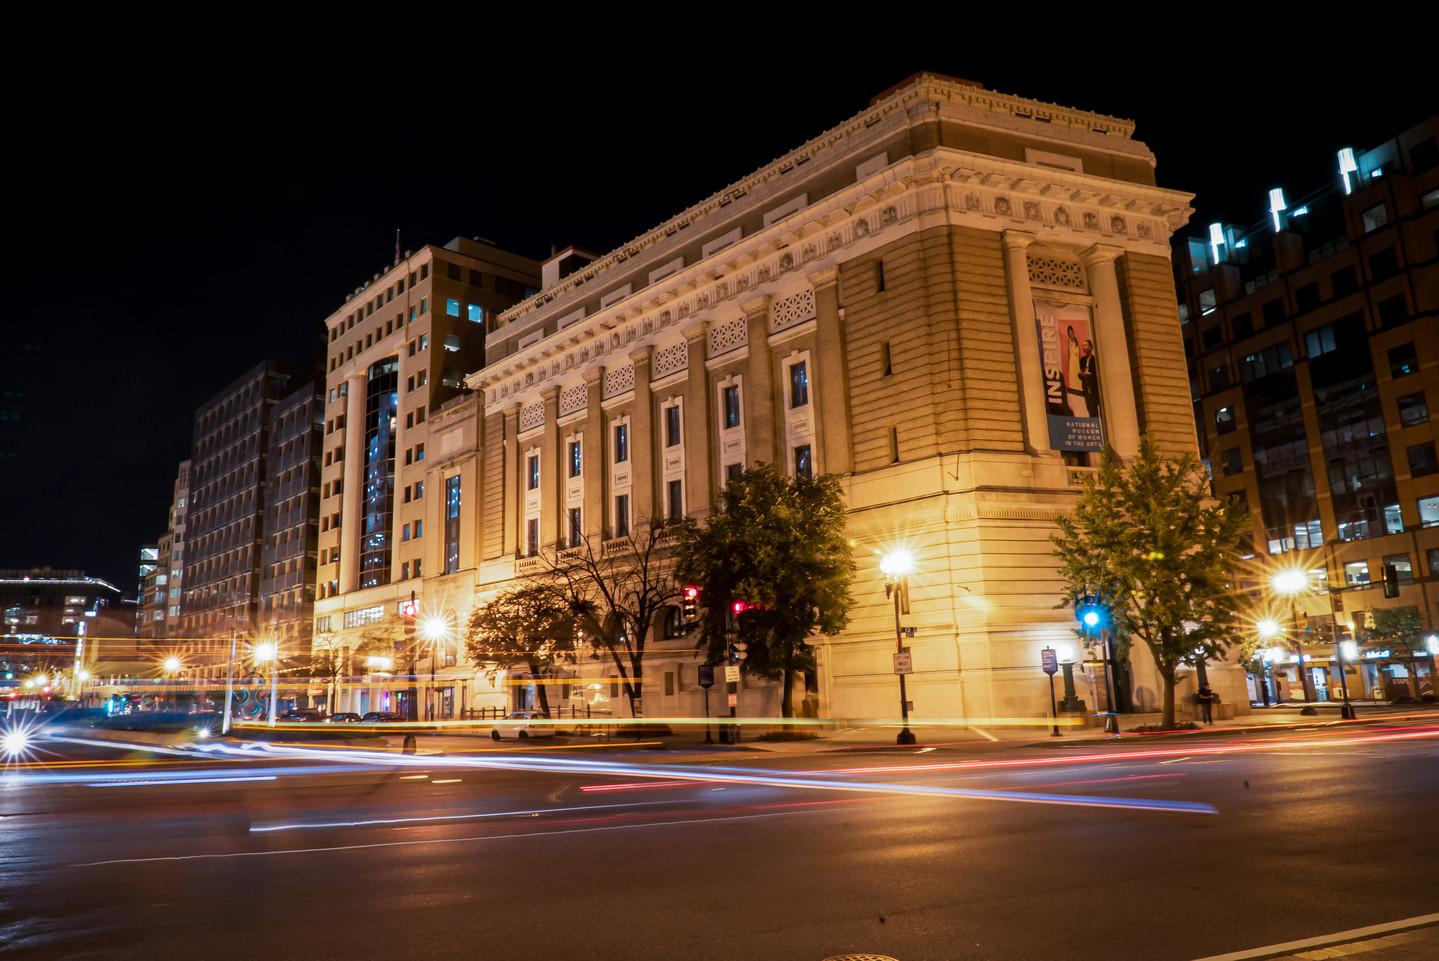 Nighttime photograph of the building exterior with car lights streaking in the foreground.